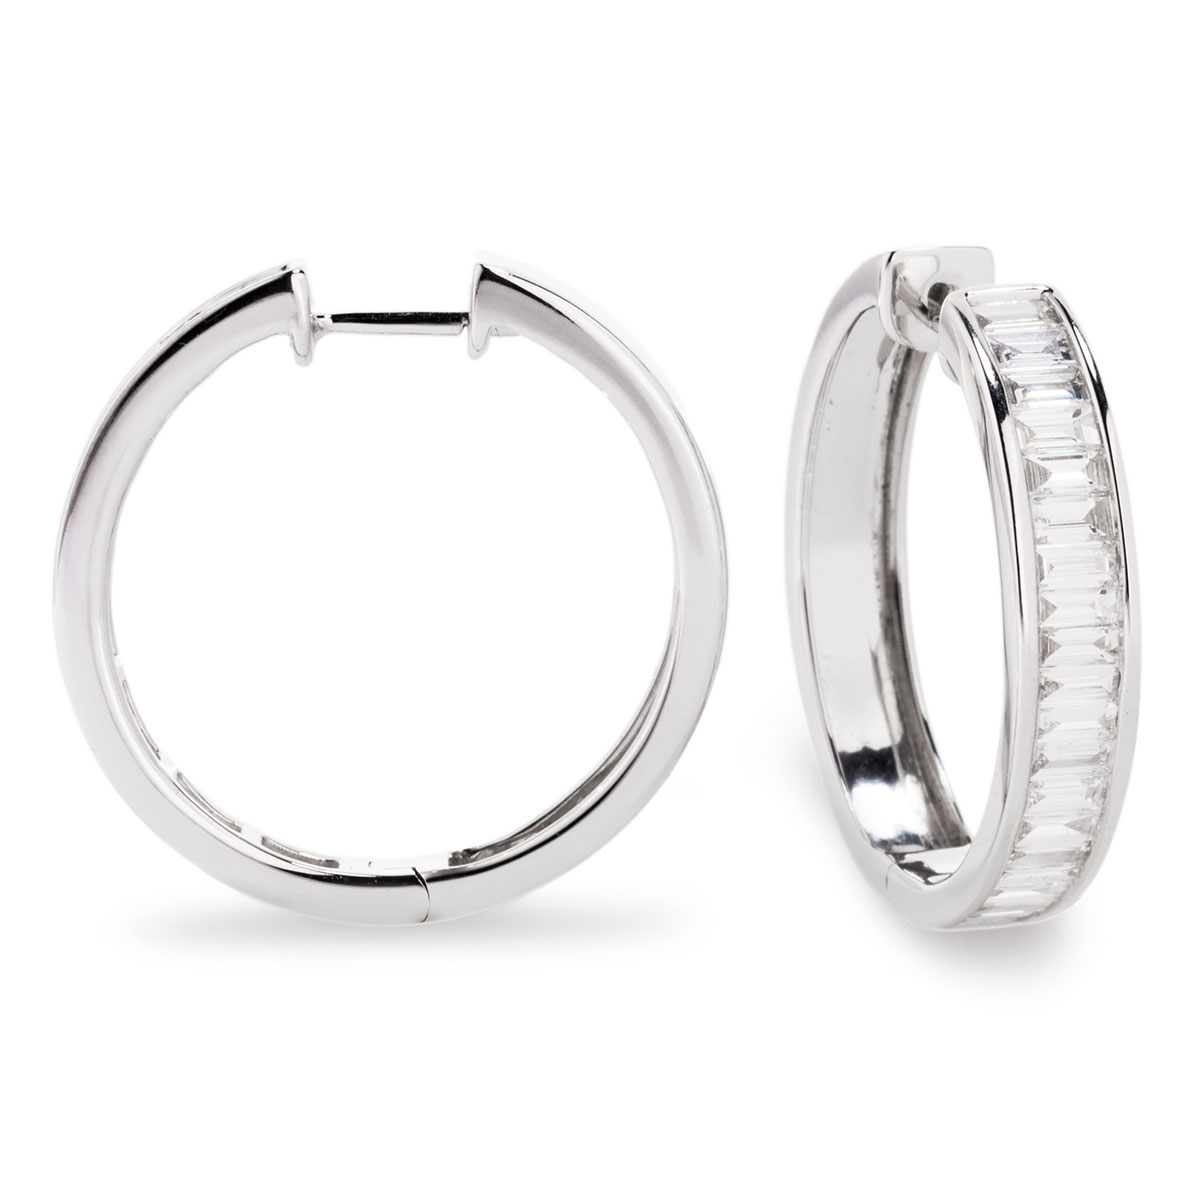 Baguette Cut Diamond Channel Set Hoop Earrings